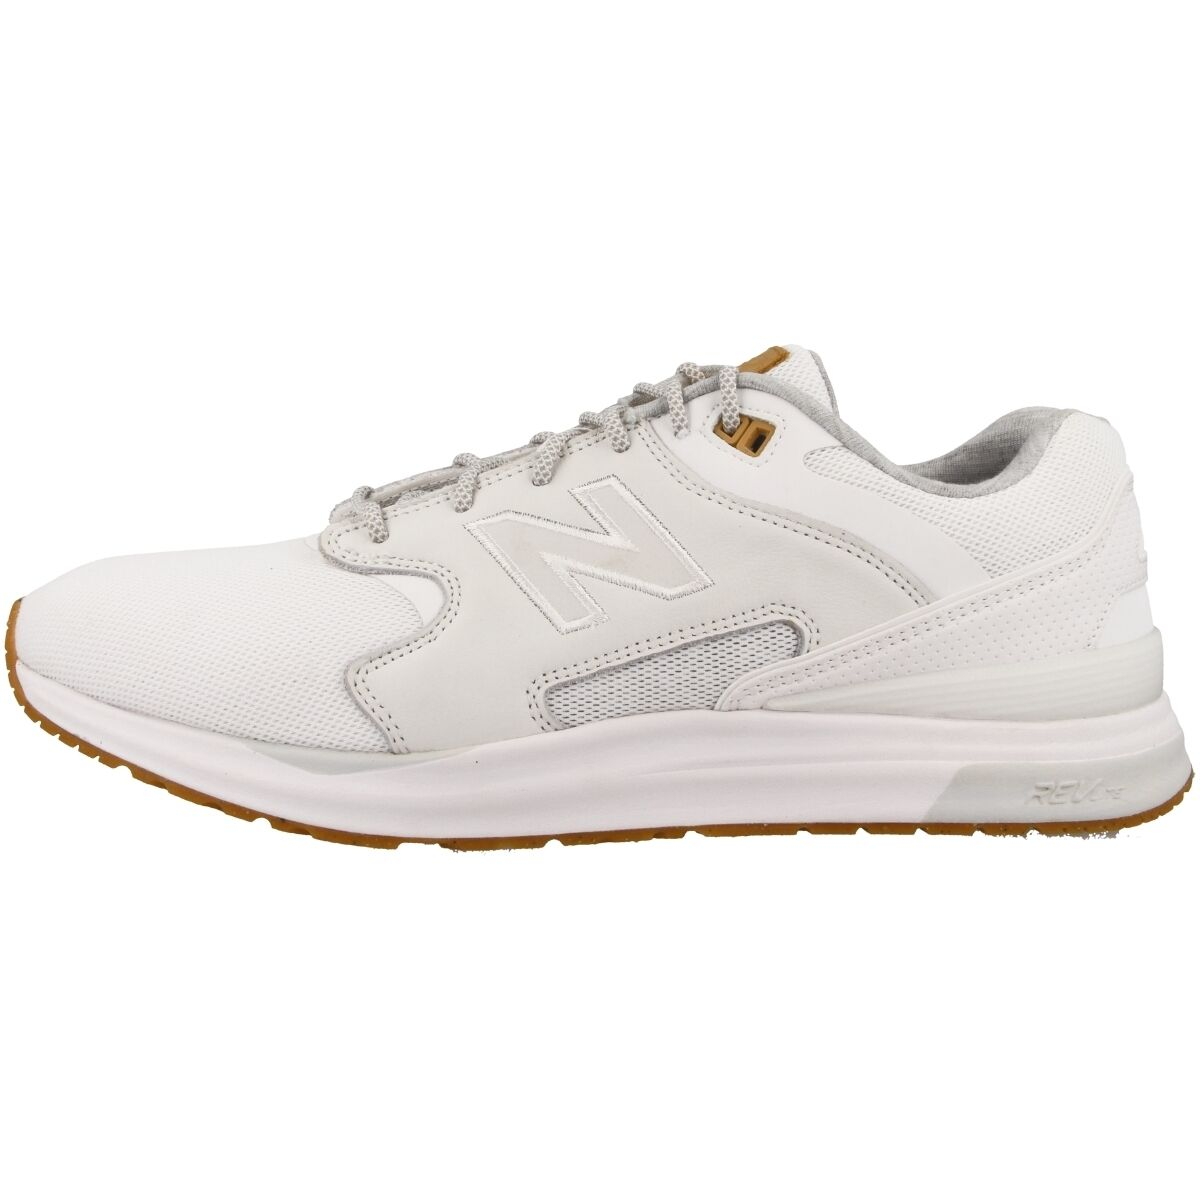 New balance ml 1550 1550 ml ad zapatos White Gum ml1550ad ocio cortos MD 009 1500 636611